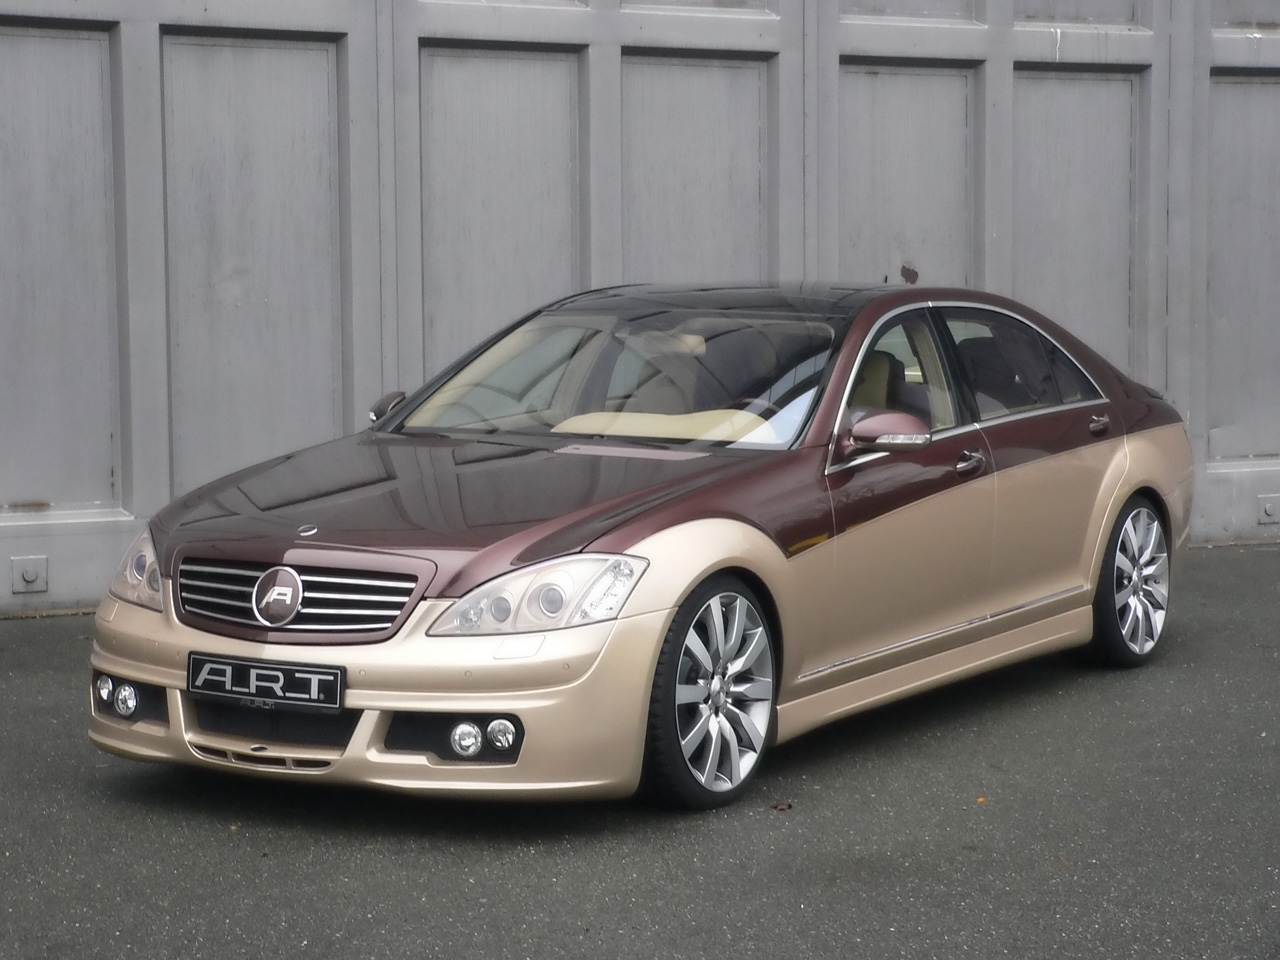 Gag mbois blaz mercedes benz s class for Mercedes benz south